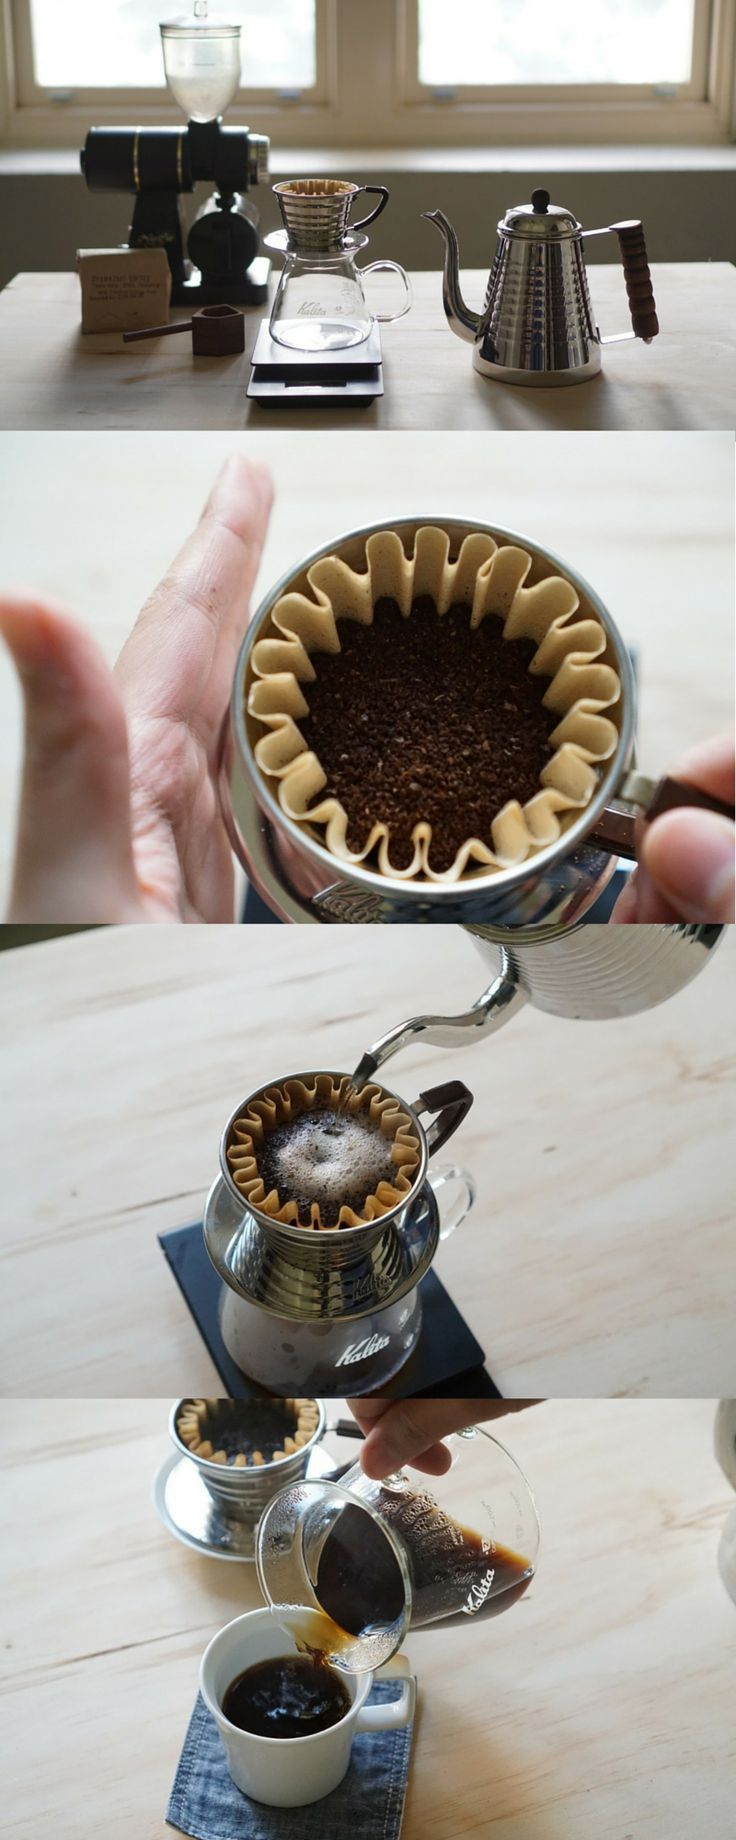 1000+ ideas about Pour Over Coffee on Pinterest Coffee, Pour over coffee maker and Coffee maker